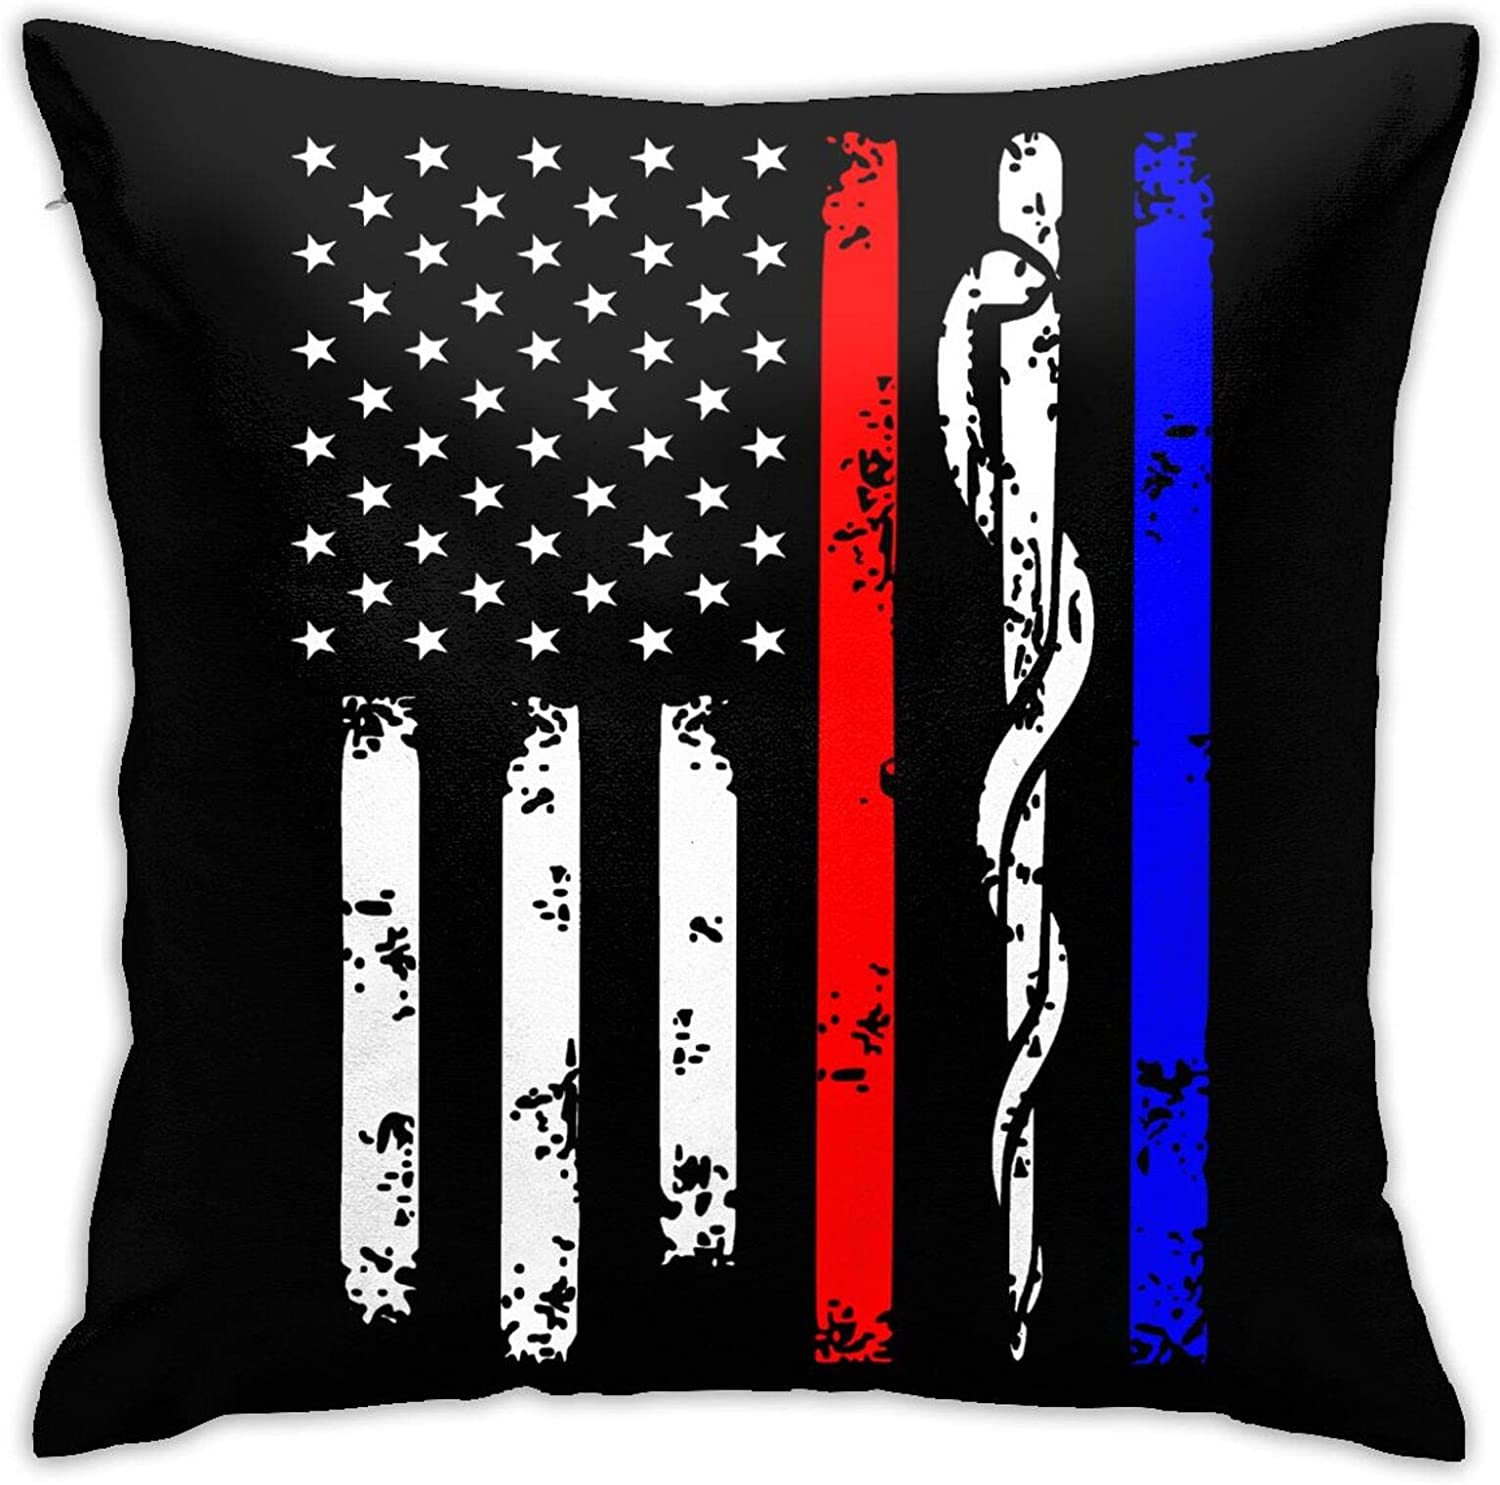 Wanaiober Police & Firefighter & EMT Flag Pillow Cases Double Sided Printing Bolster Square Pillow Cases Hidden Zipper 20x20inch